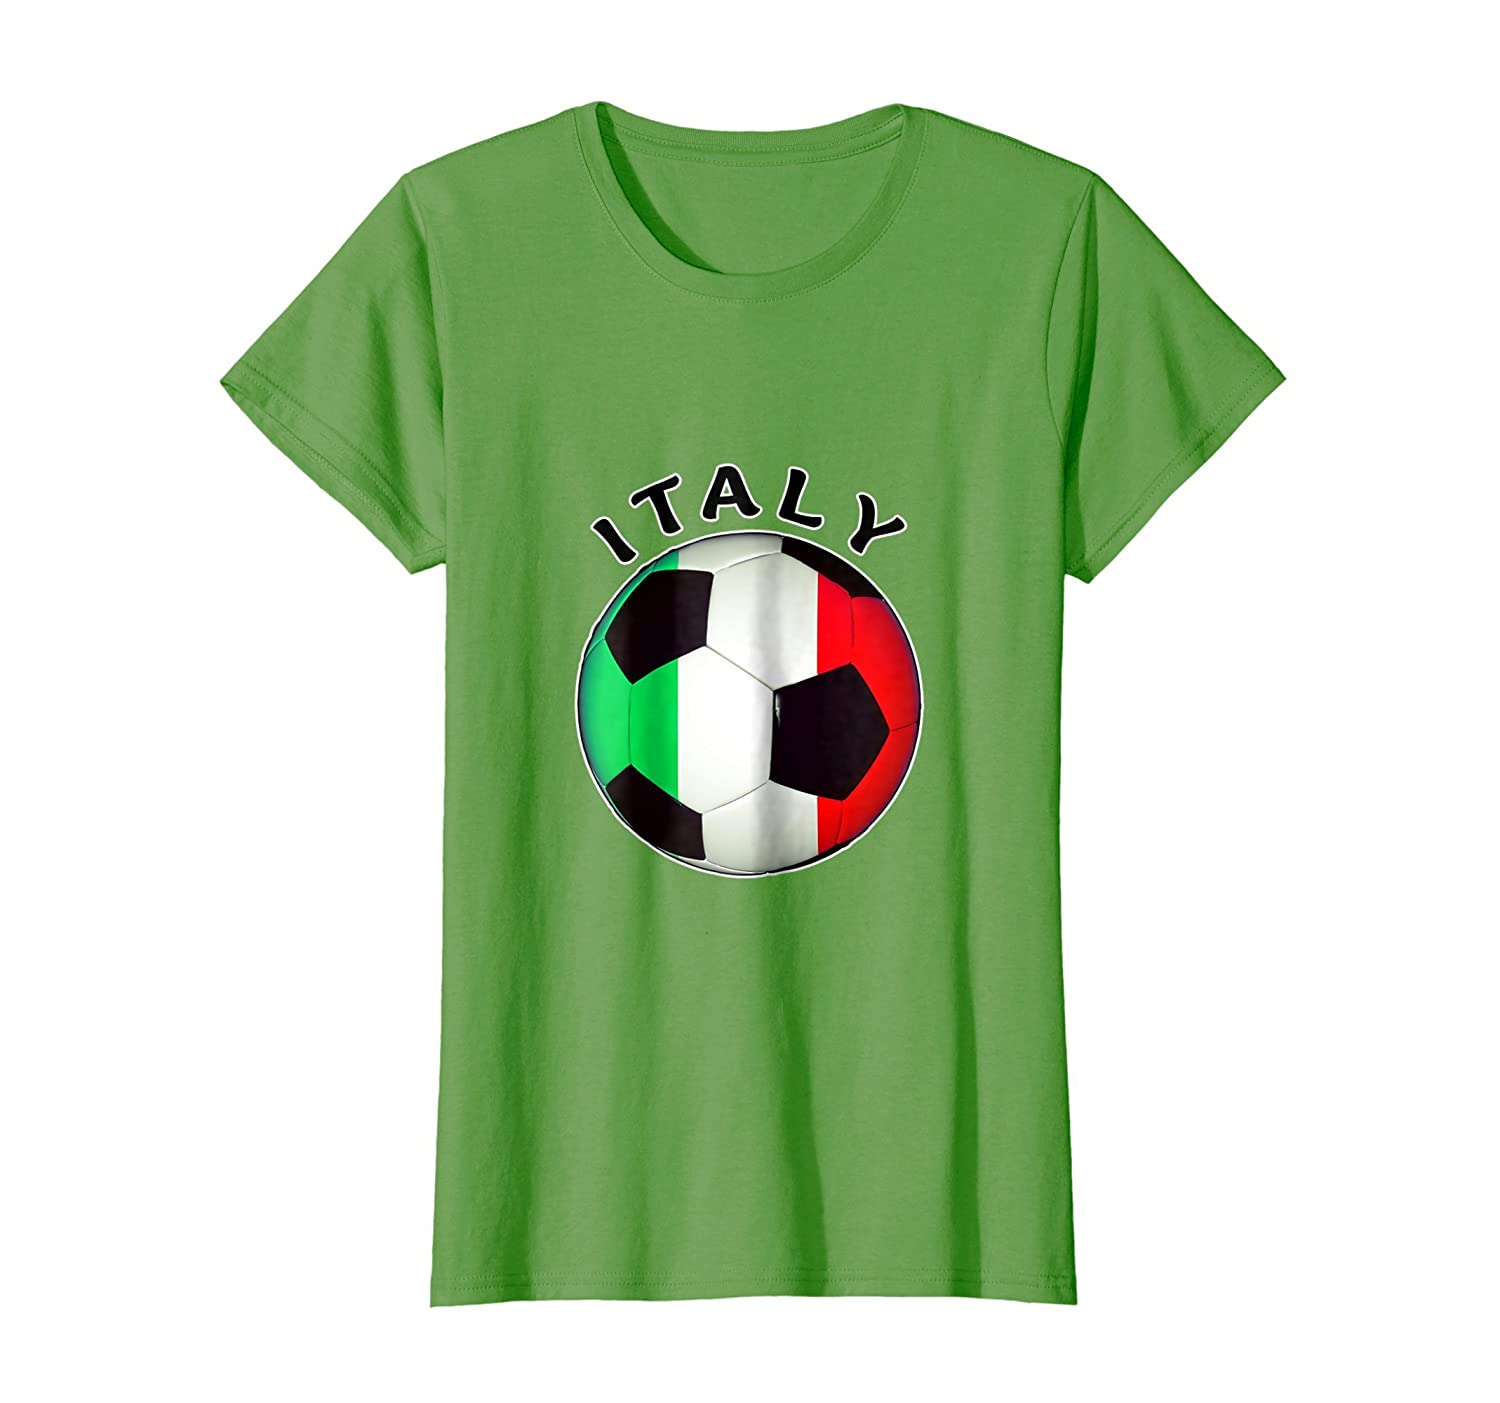 Amazon.com: Italian Soccer T Shirt- Camiseta De Futbol Italiano: Clothing